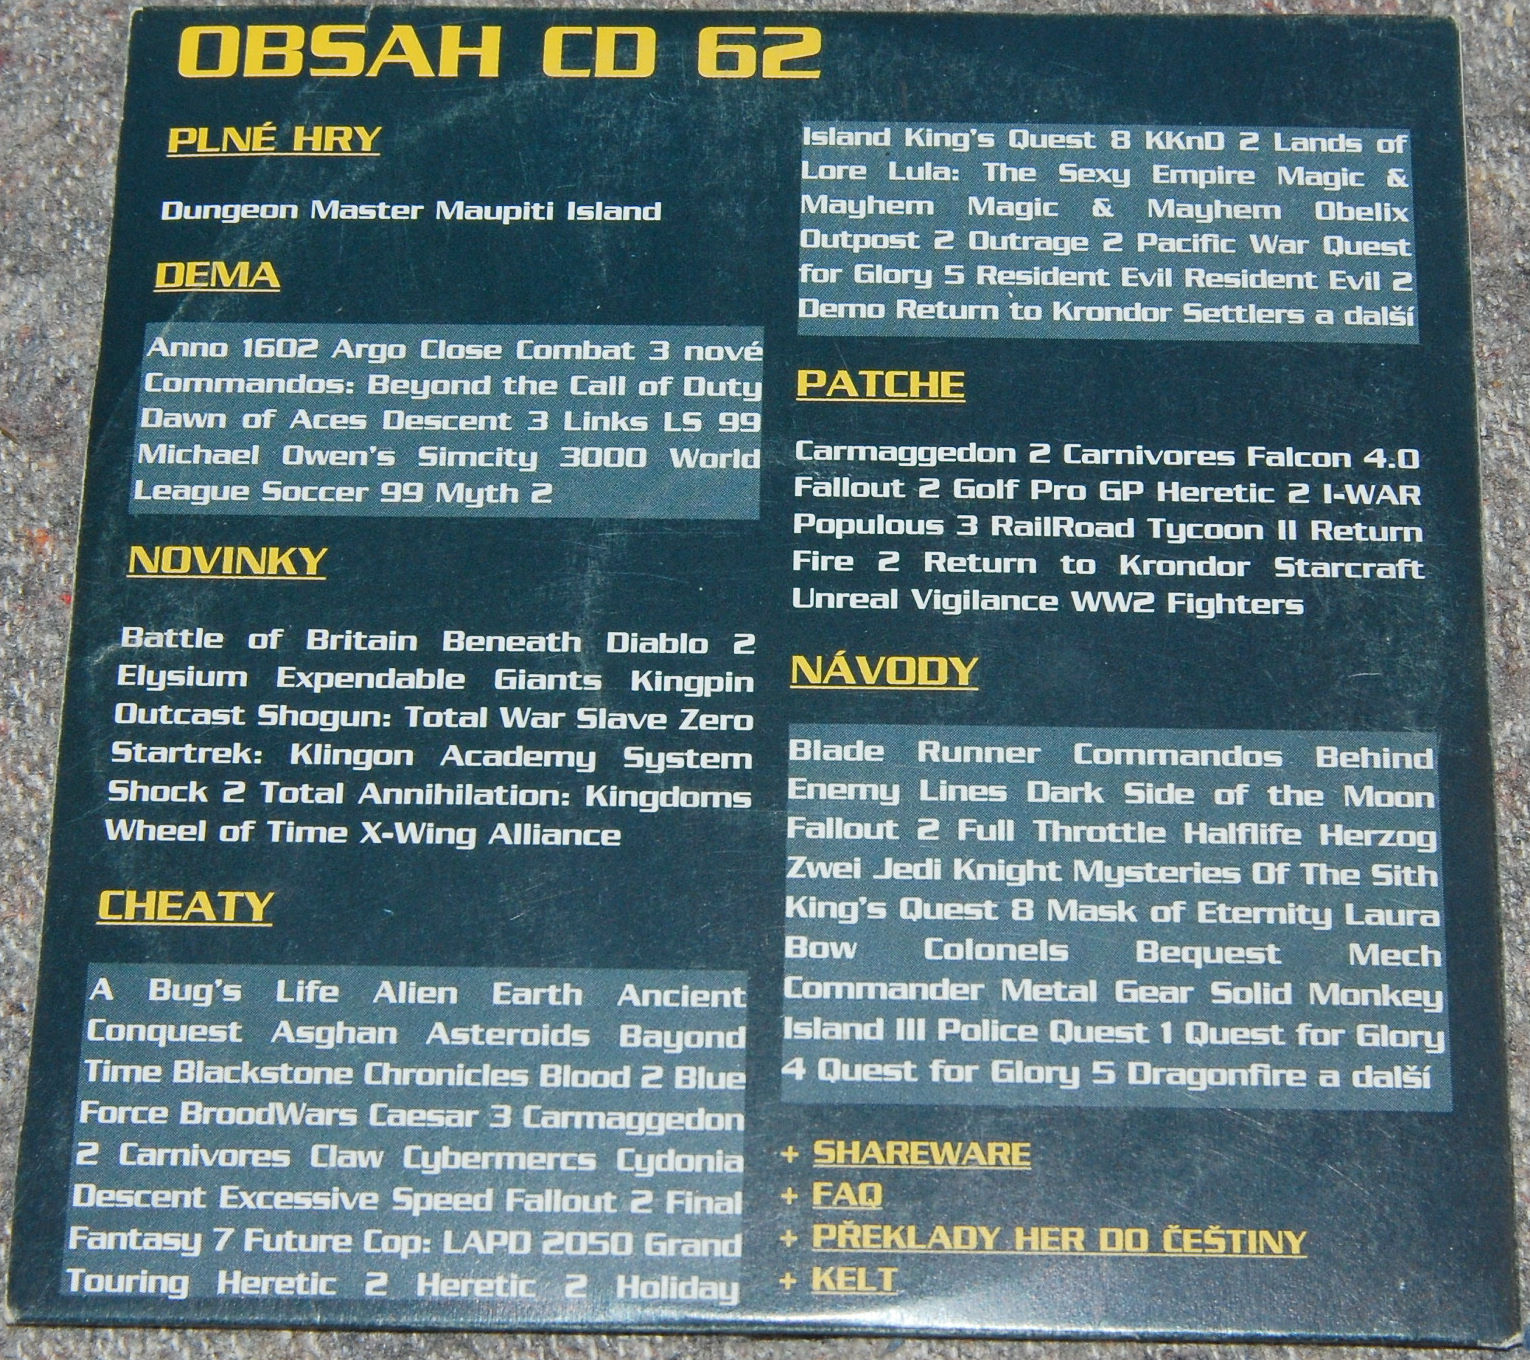 Dungeon Master for PC Compact Disc Sleeve Back published in Czech magazine 'Score', Issue #62 February 1999, Page